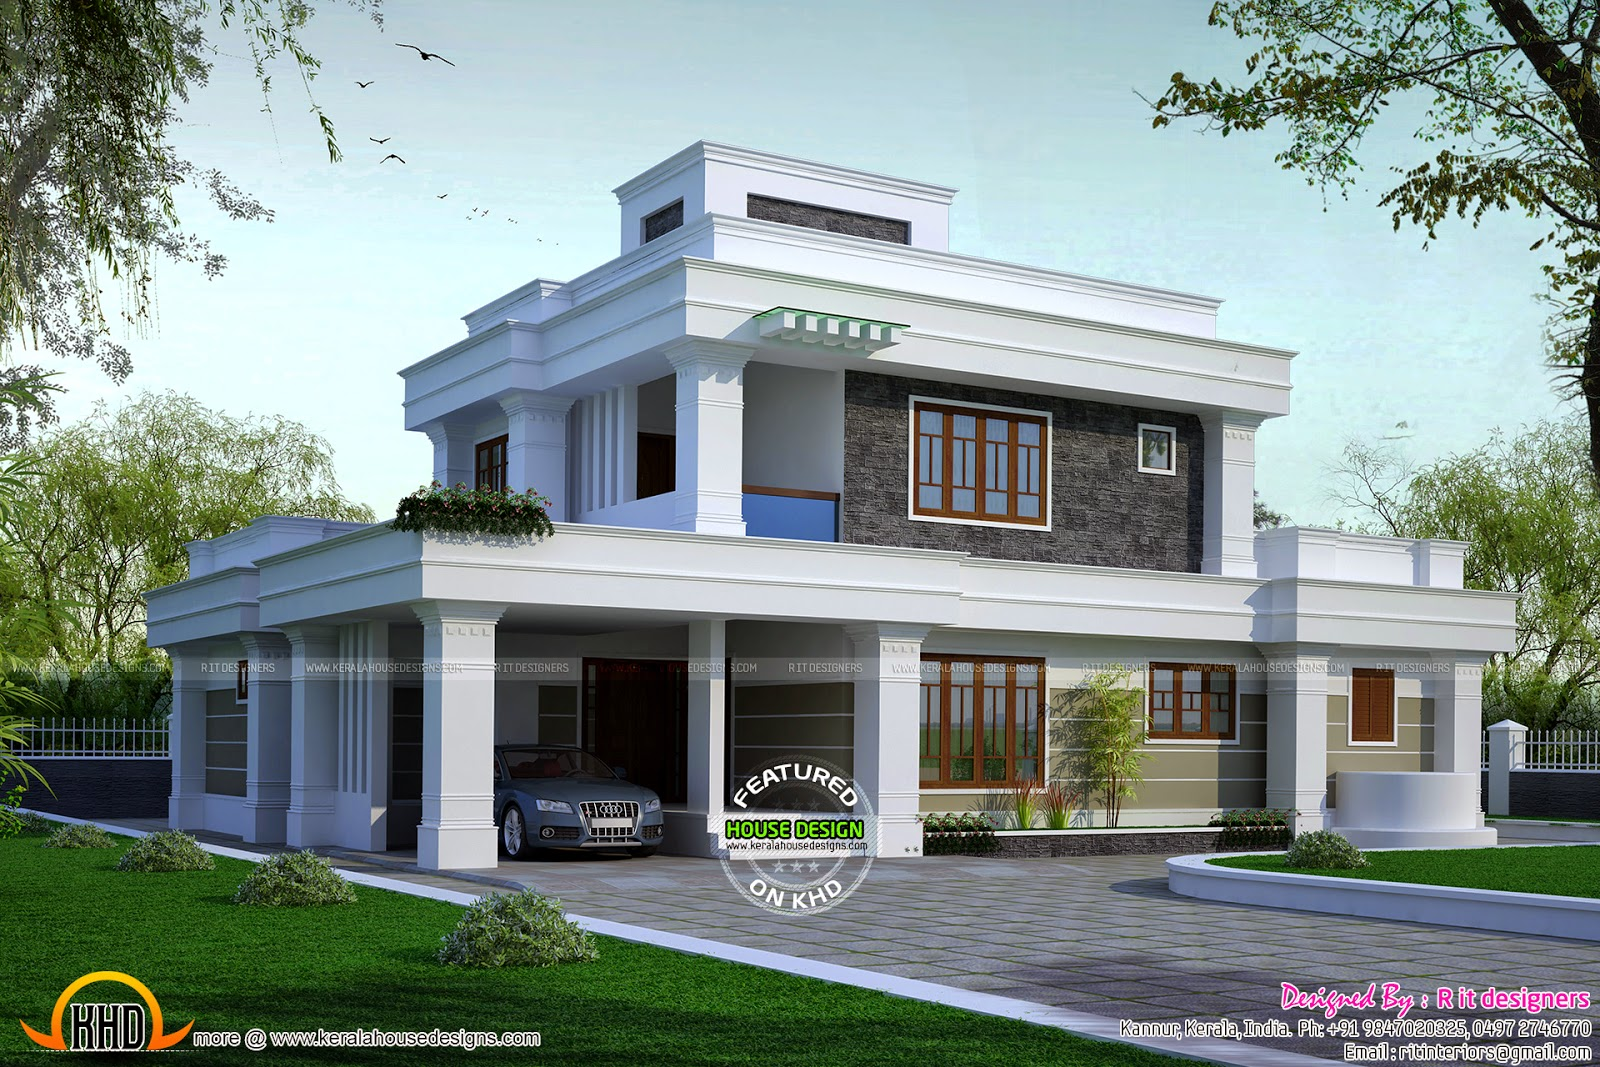 5 Bhk Flat Roof House on Floor Plans 1700 Square Feet Houses